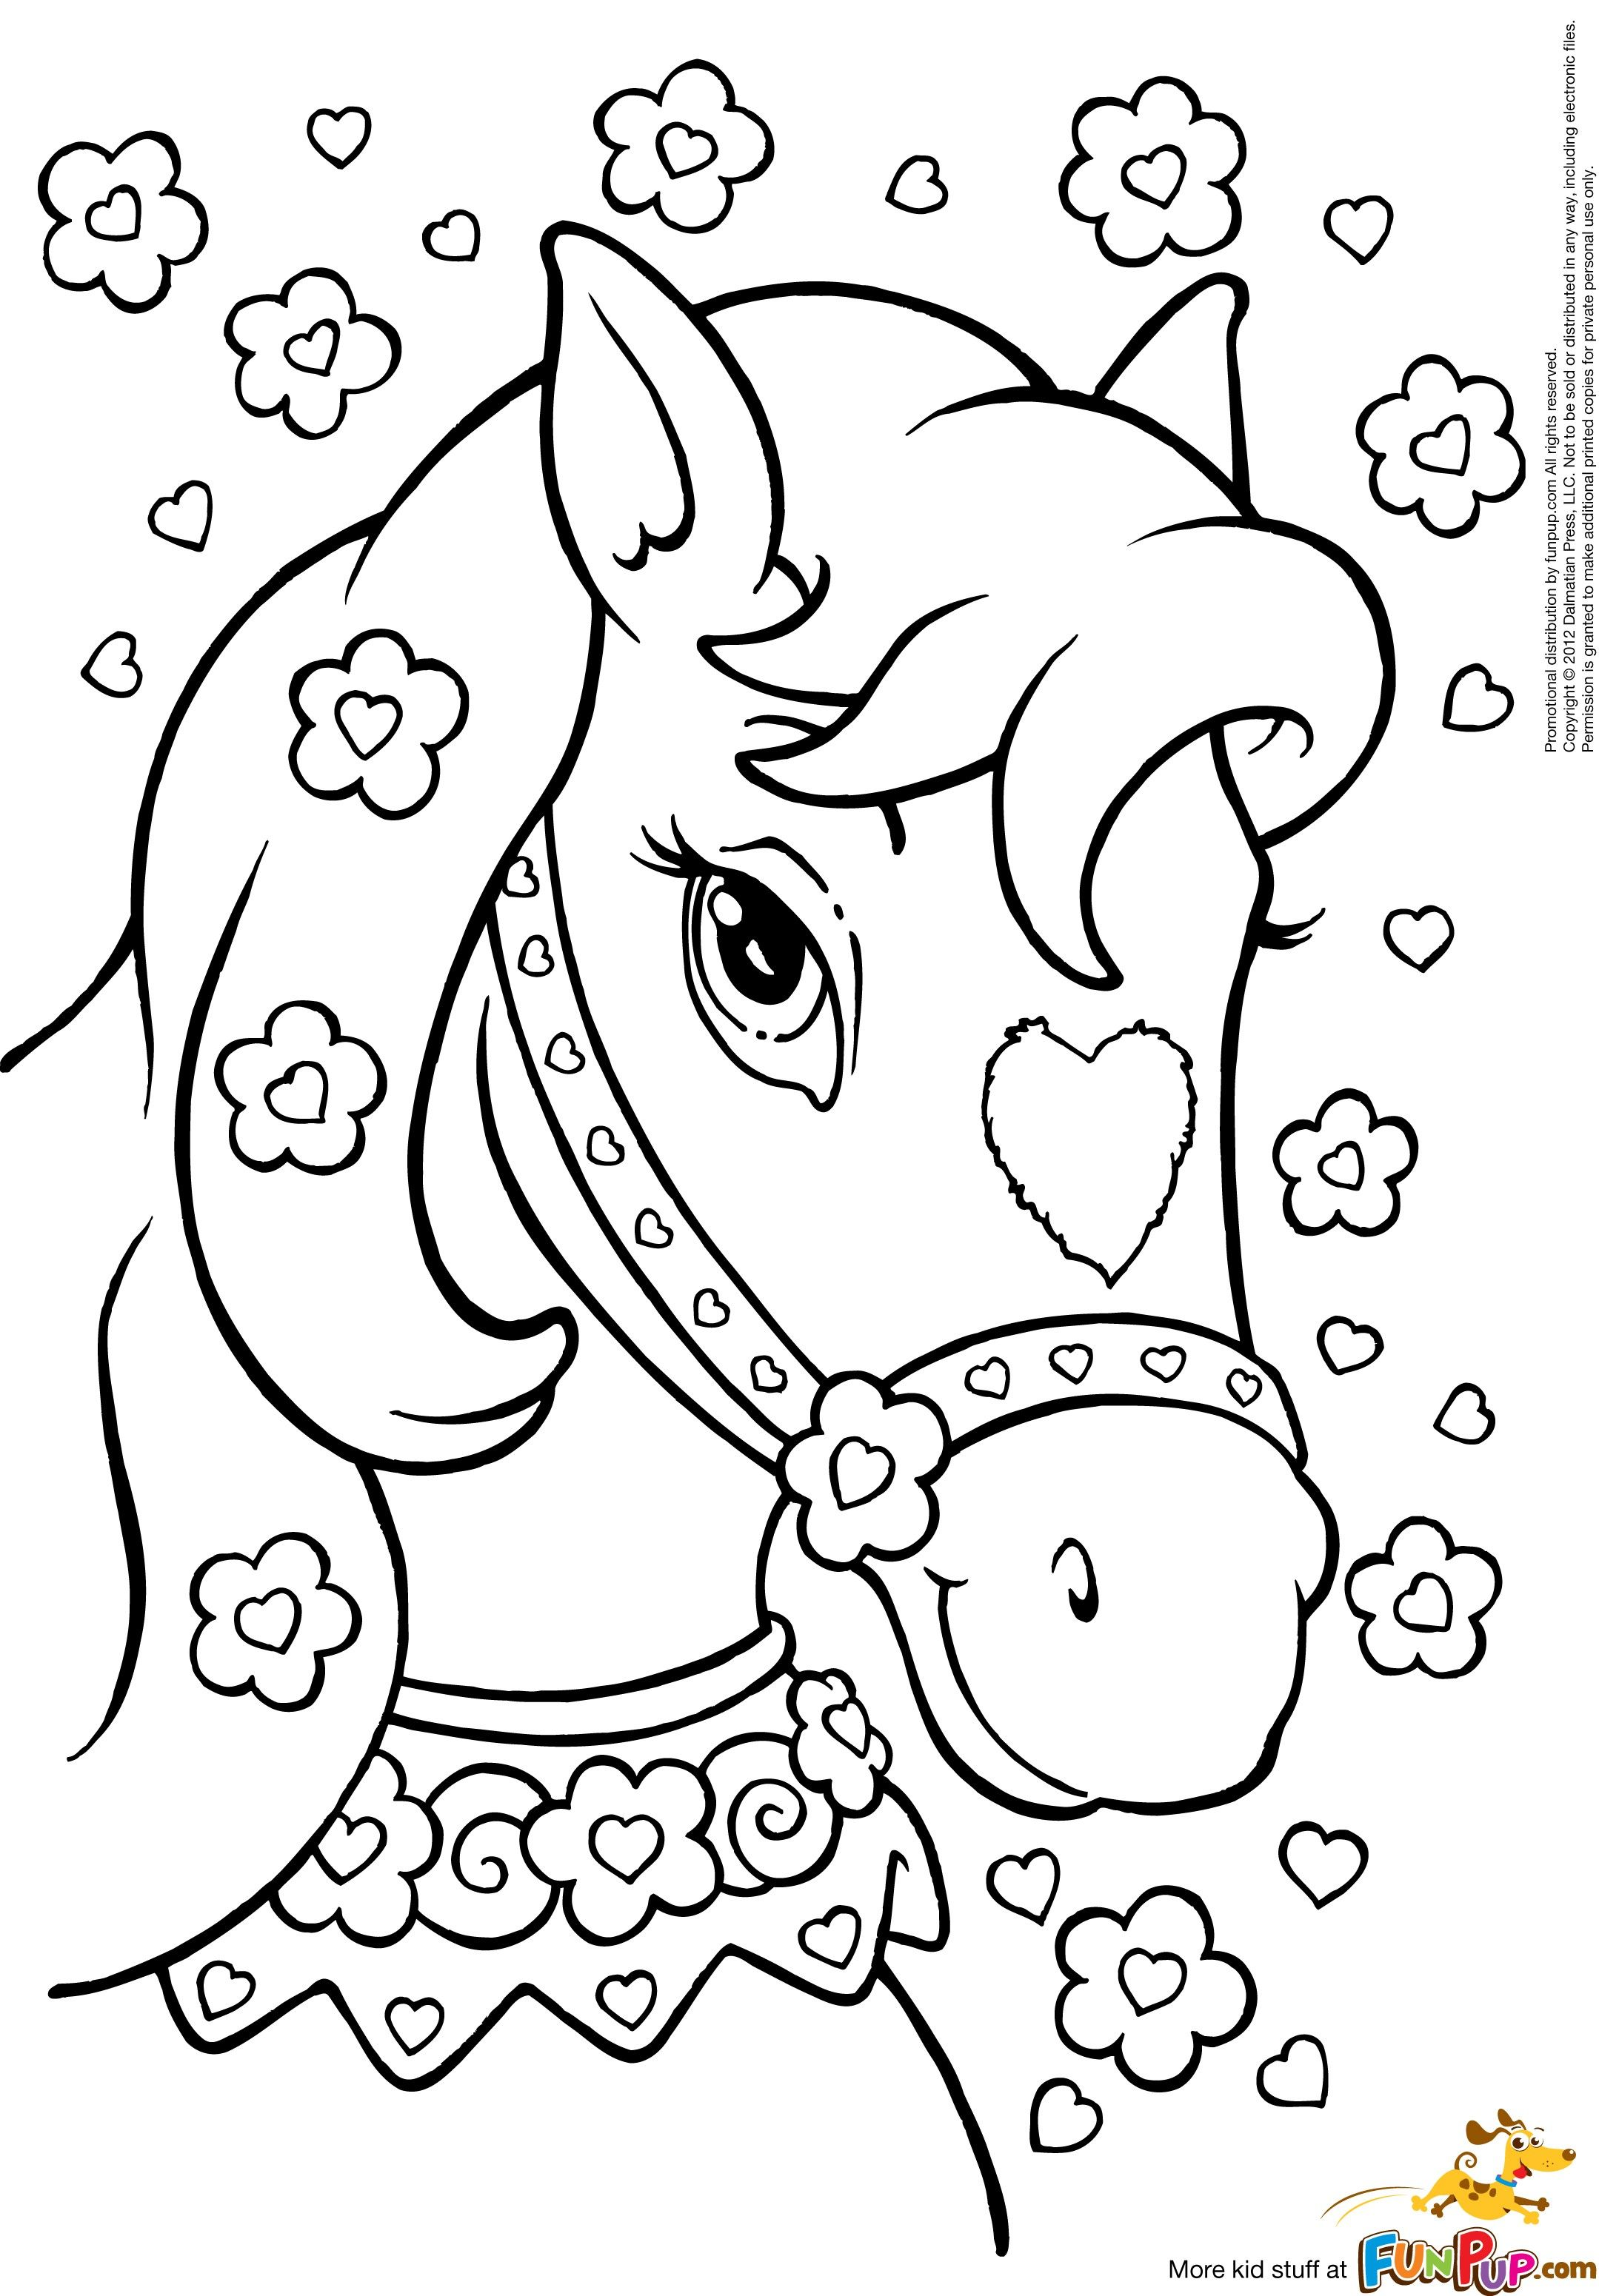 2159x3101 Printable Princess Coloring Pages Coloring Pages For Kids Kids